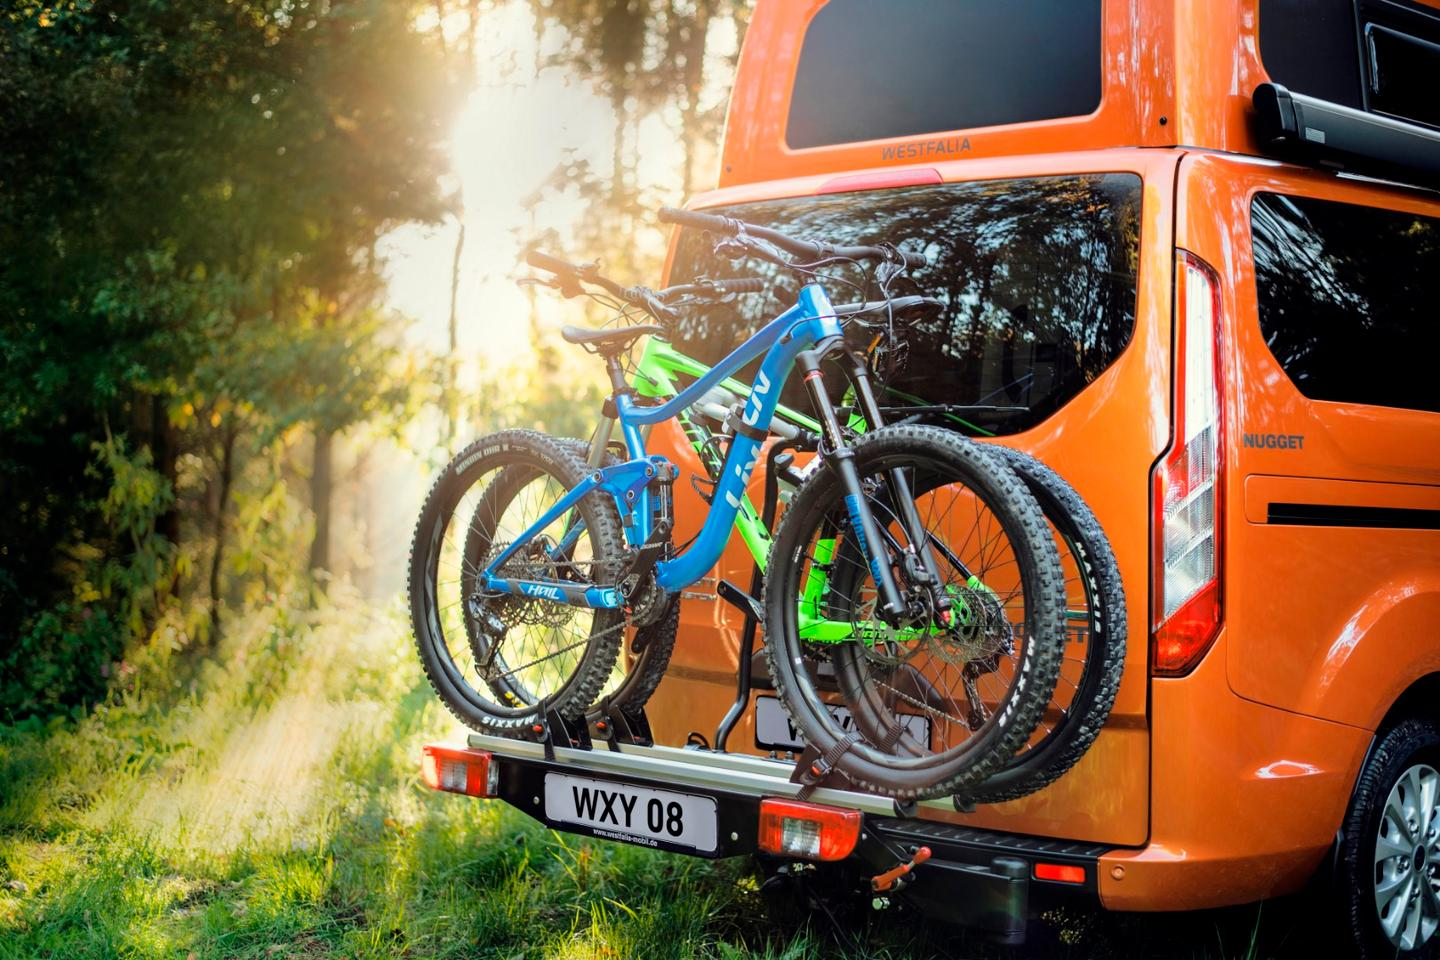 Available bicycle carrier on the Ford Nugget camper van